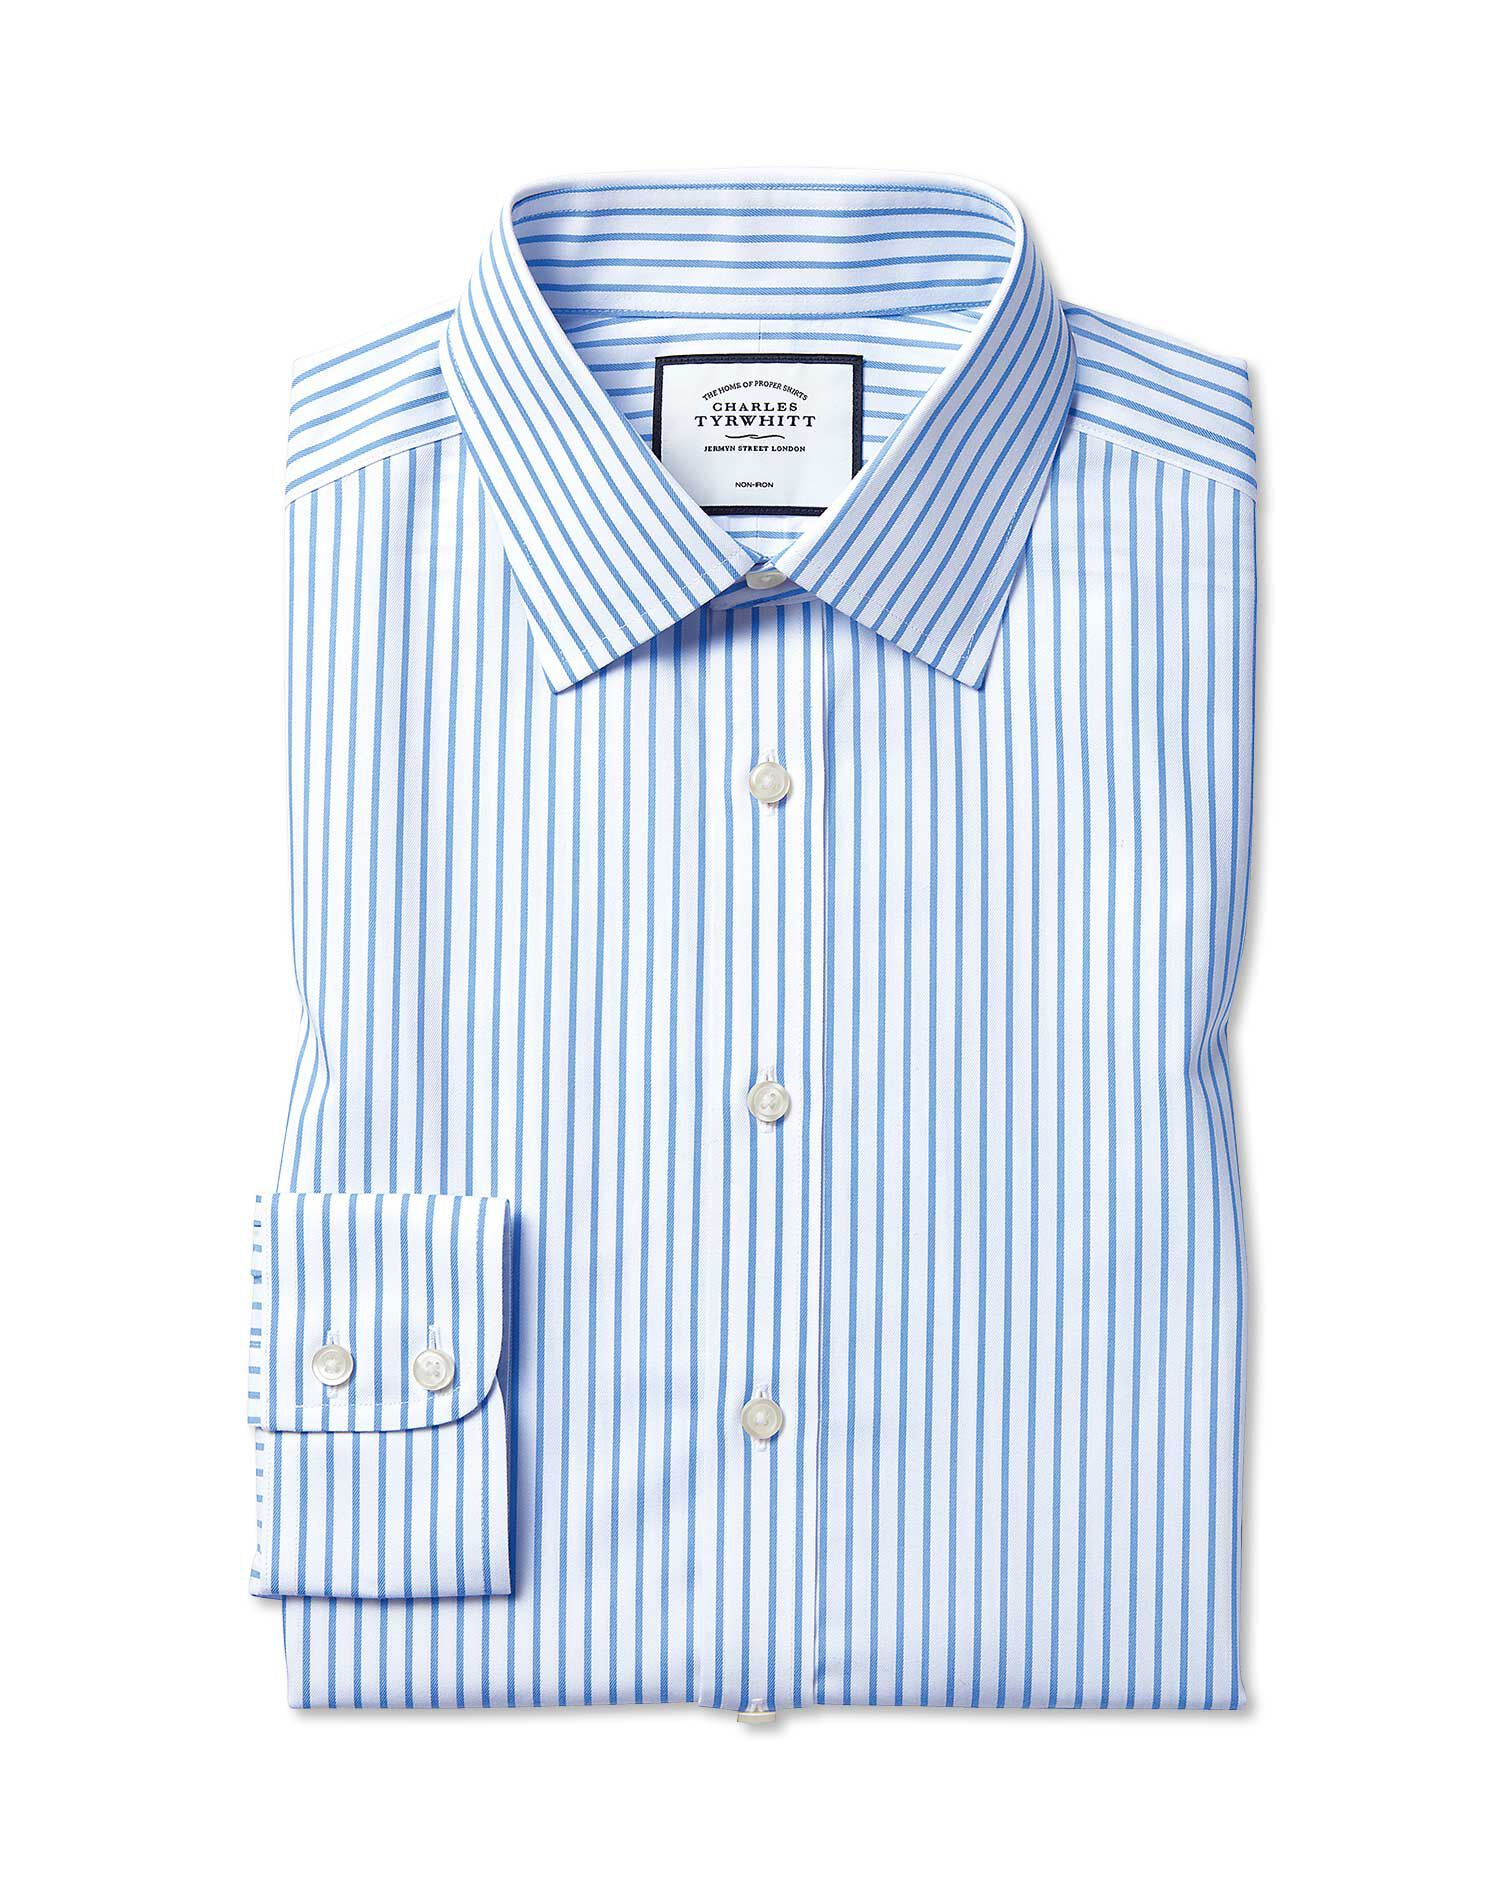 Extra Slim Fit Non-Iron Twill White and Sky Blue Stripe Cotton Formal Shirt Single Cuff Size 17.5/35